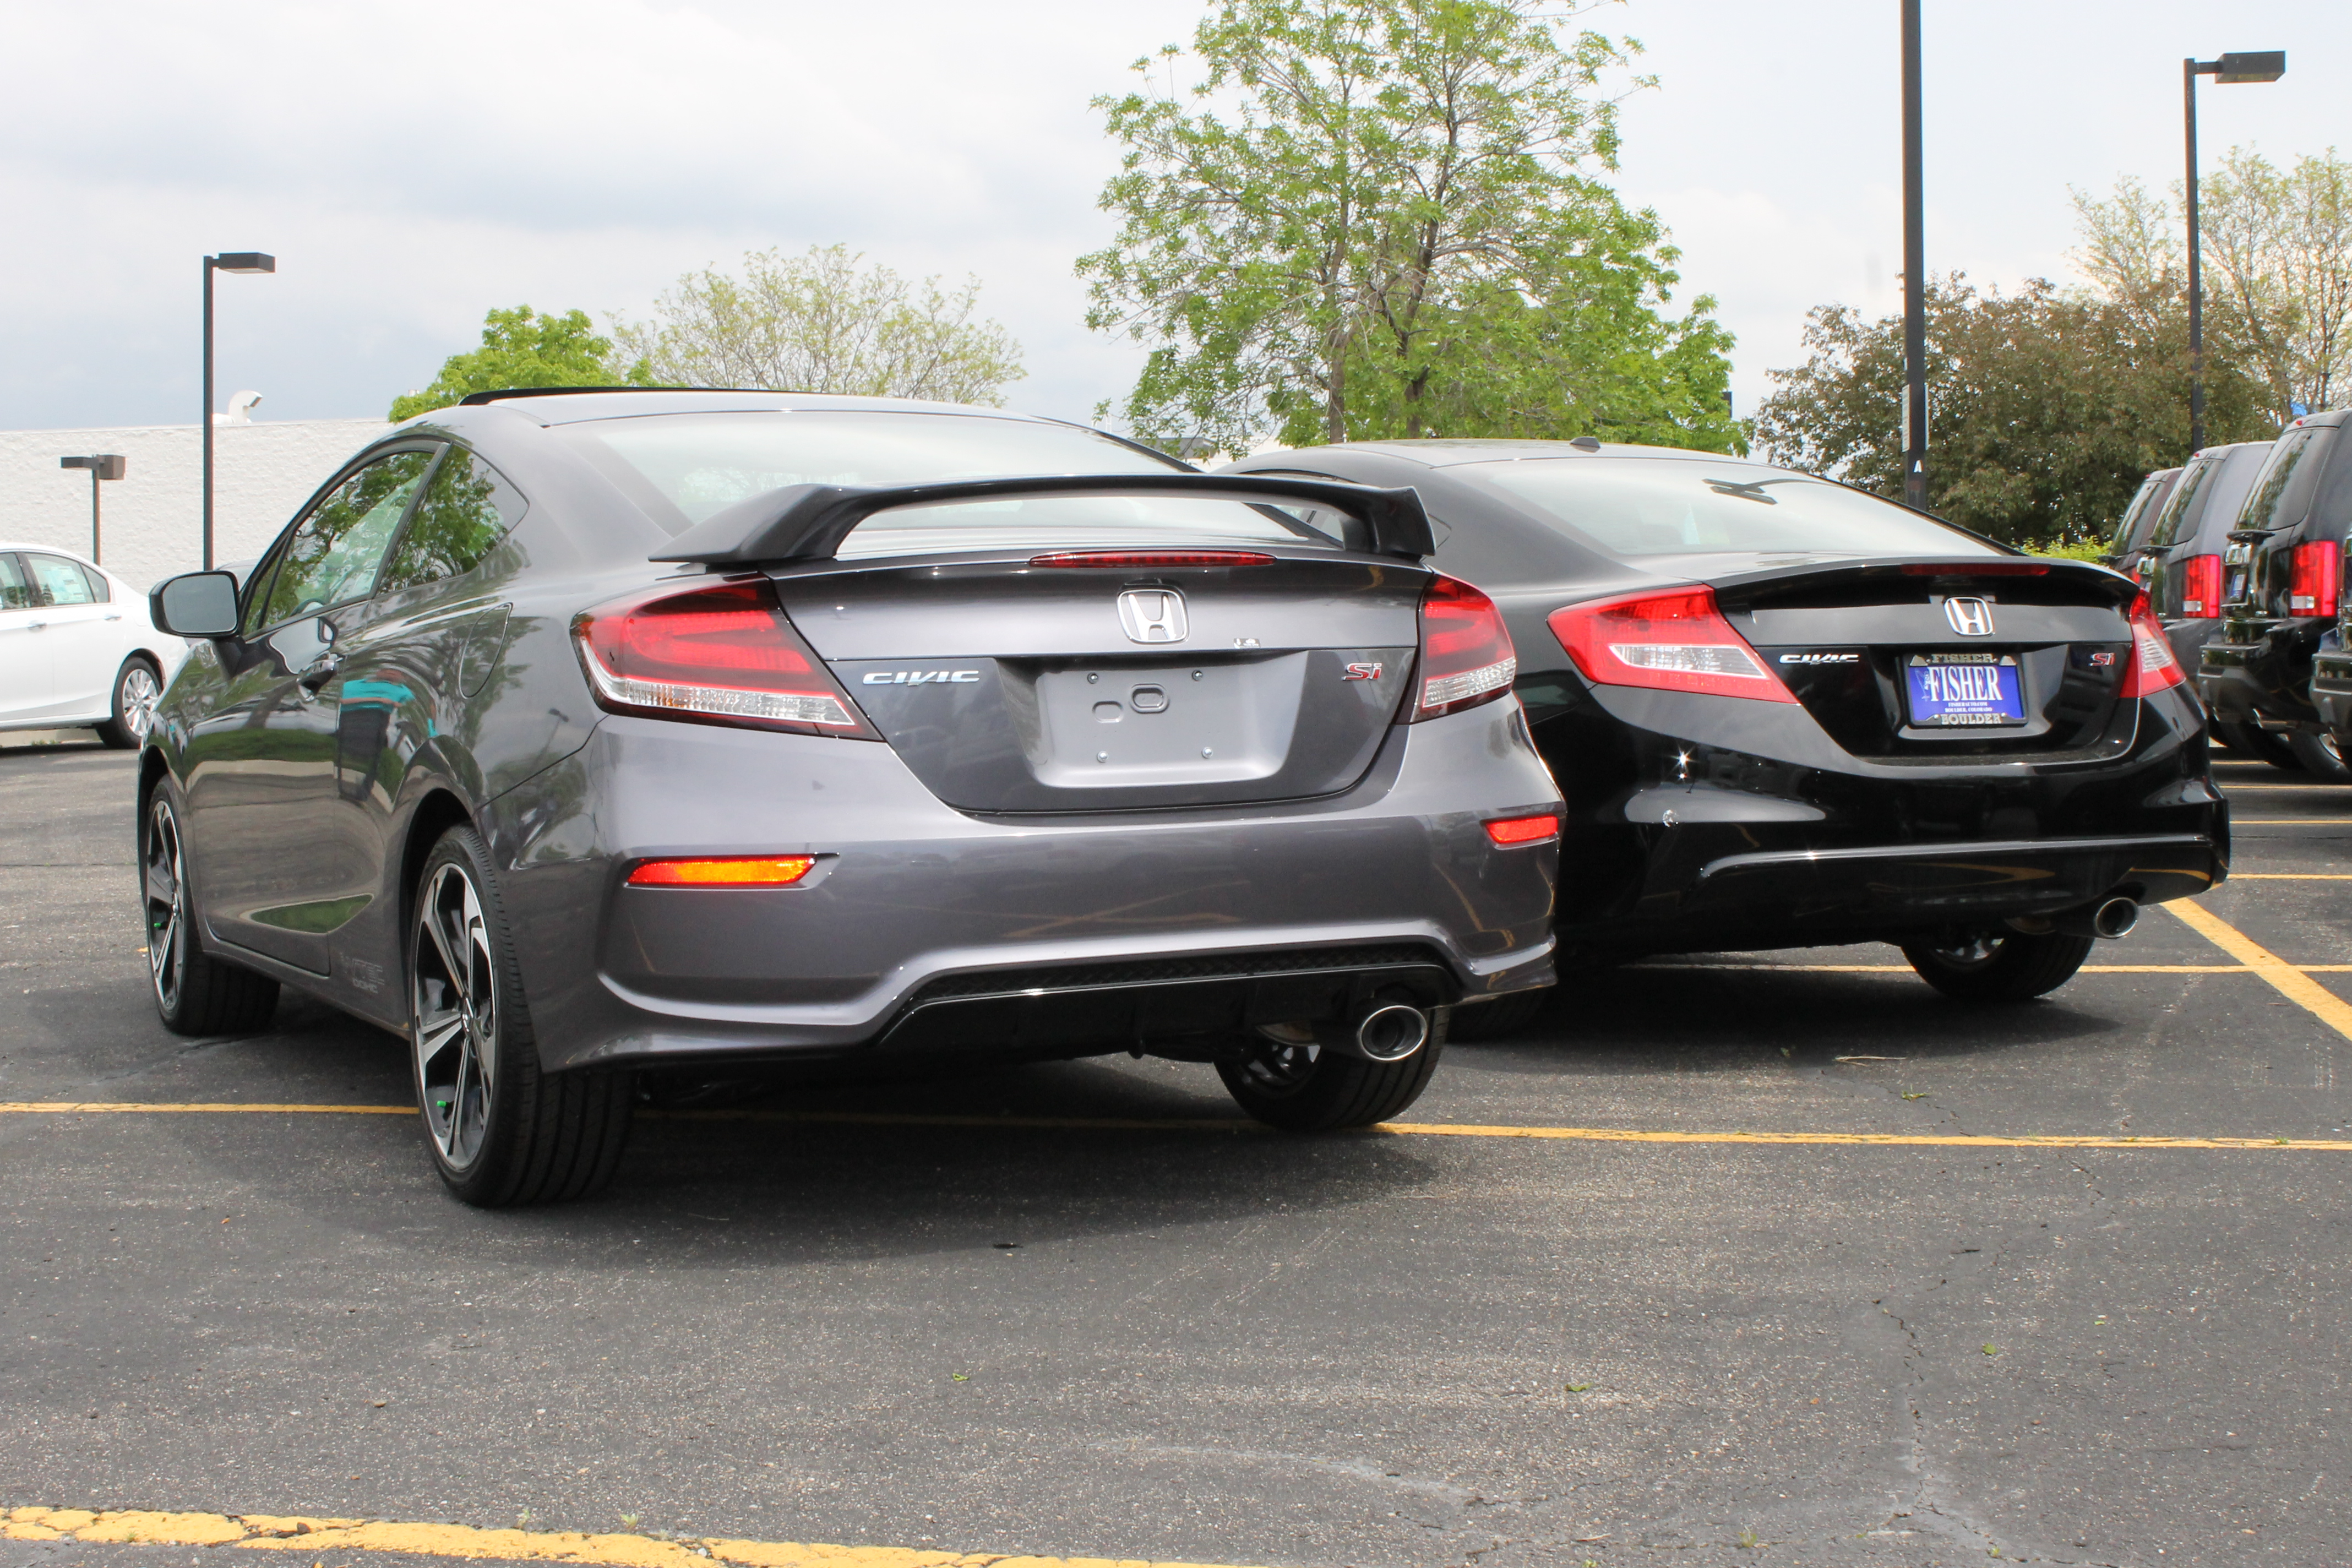 Honda Civic Si Comparison From 2013 To 2014